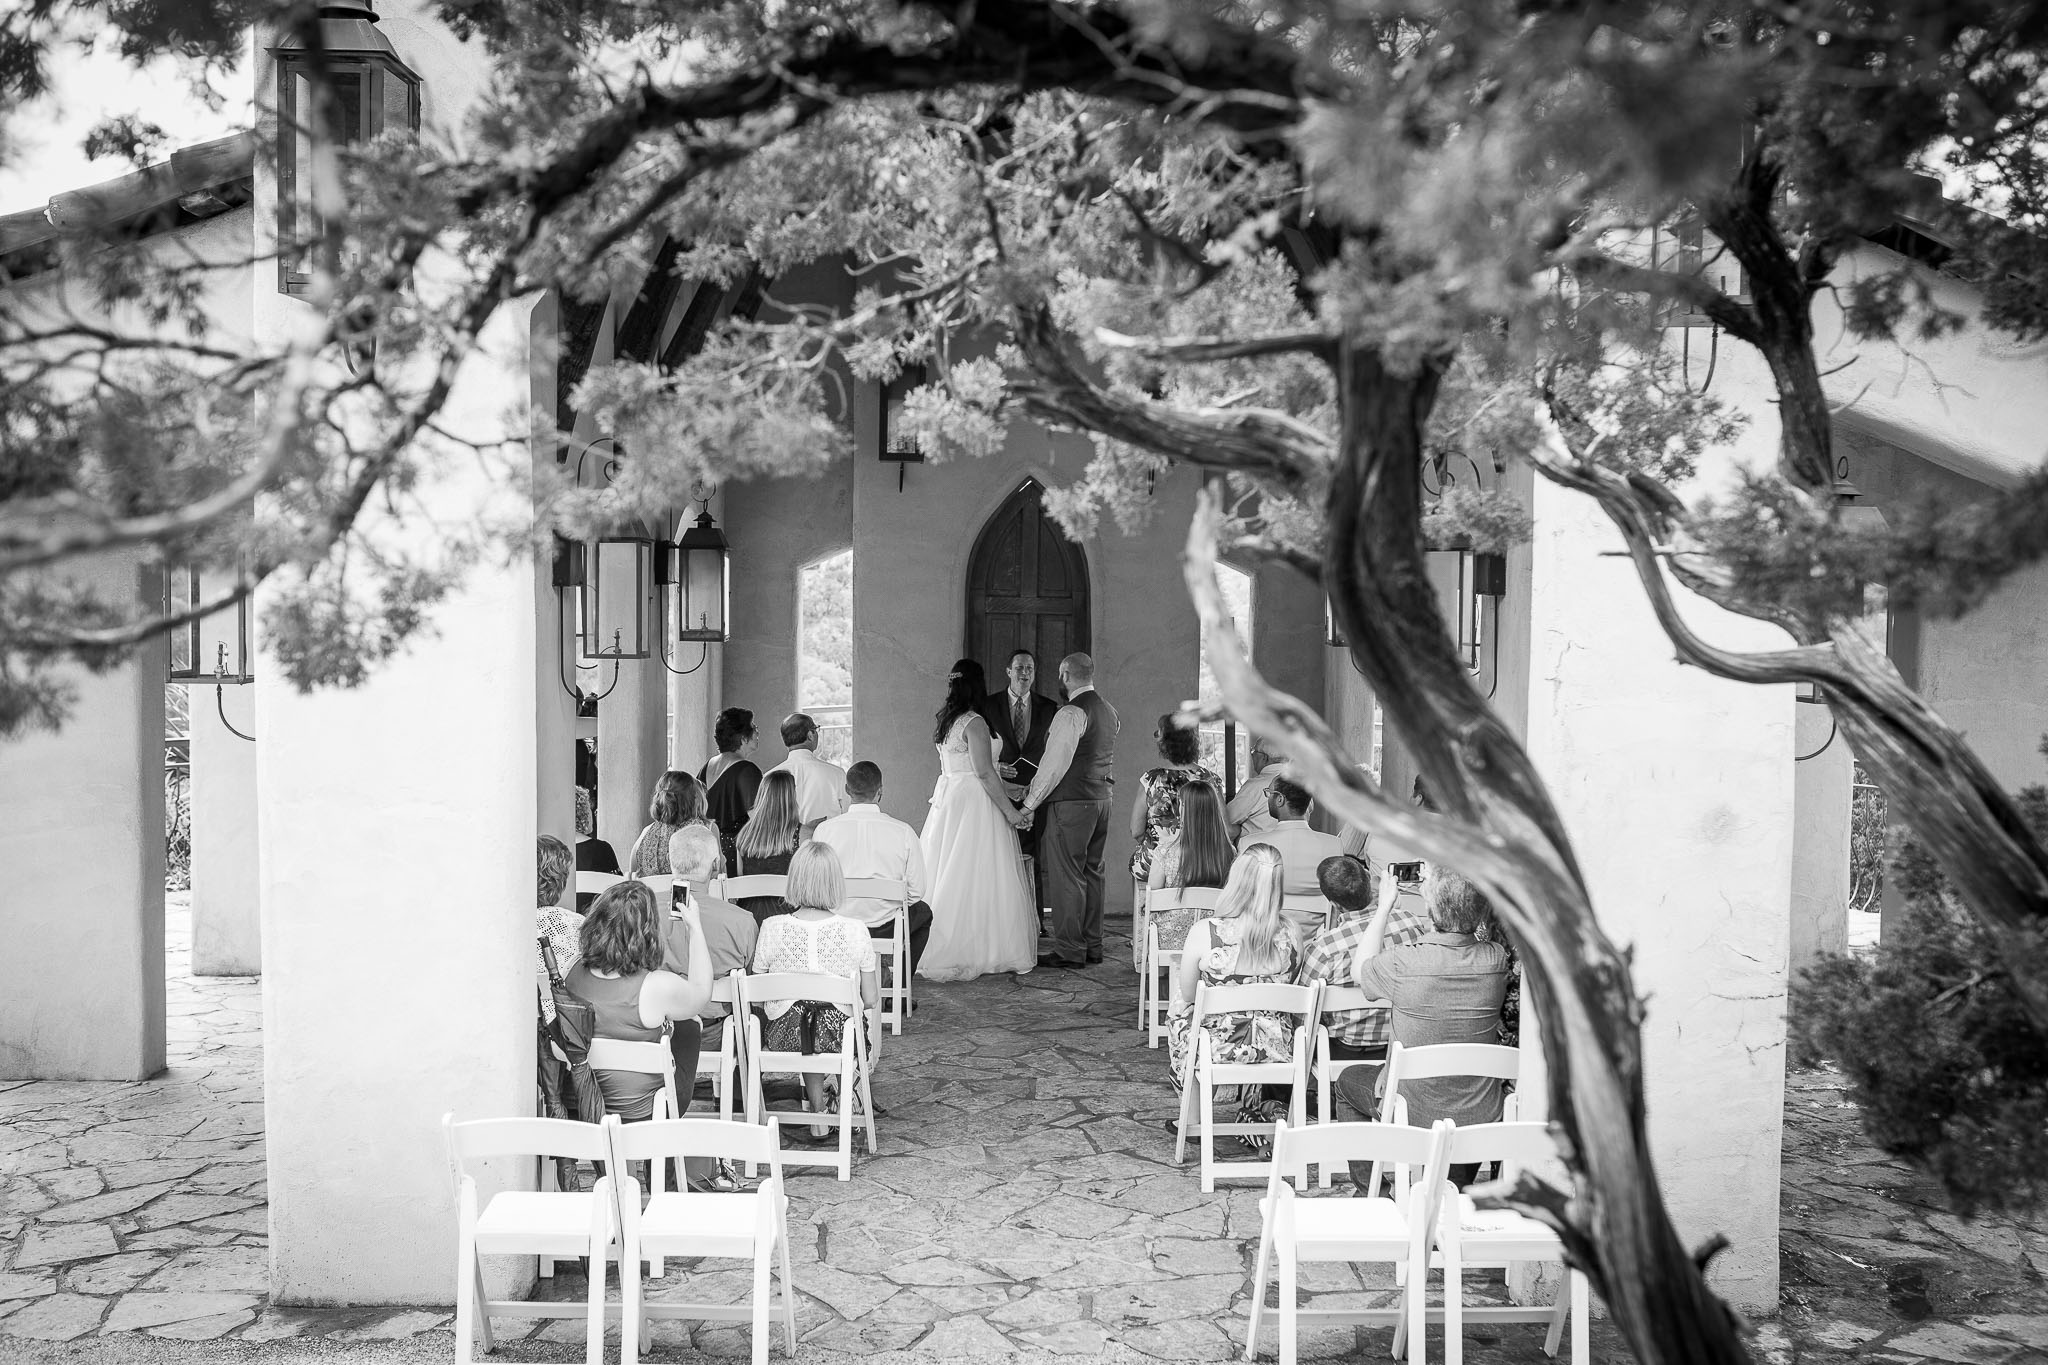 View of bride and groom through trees at wedding ceremony.